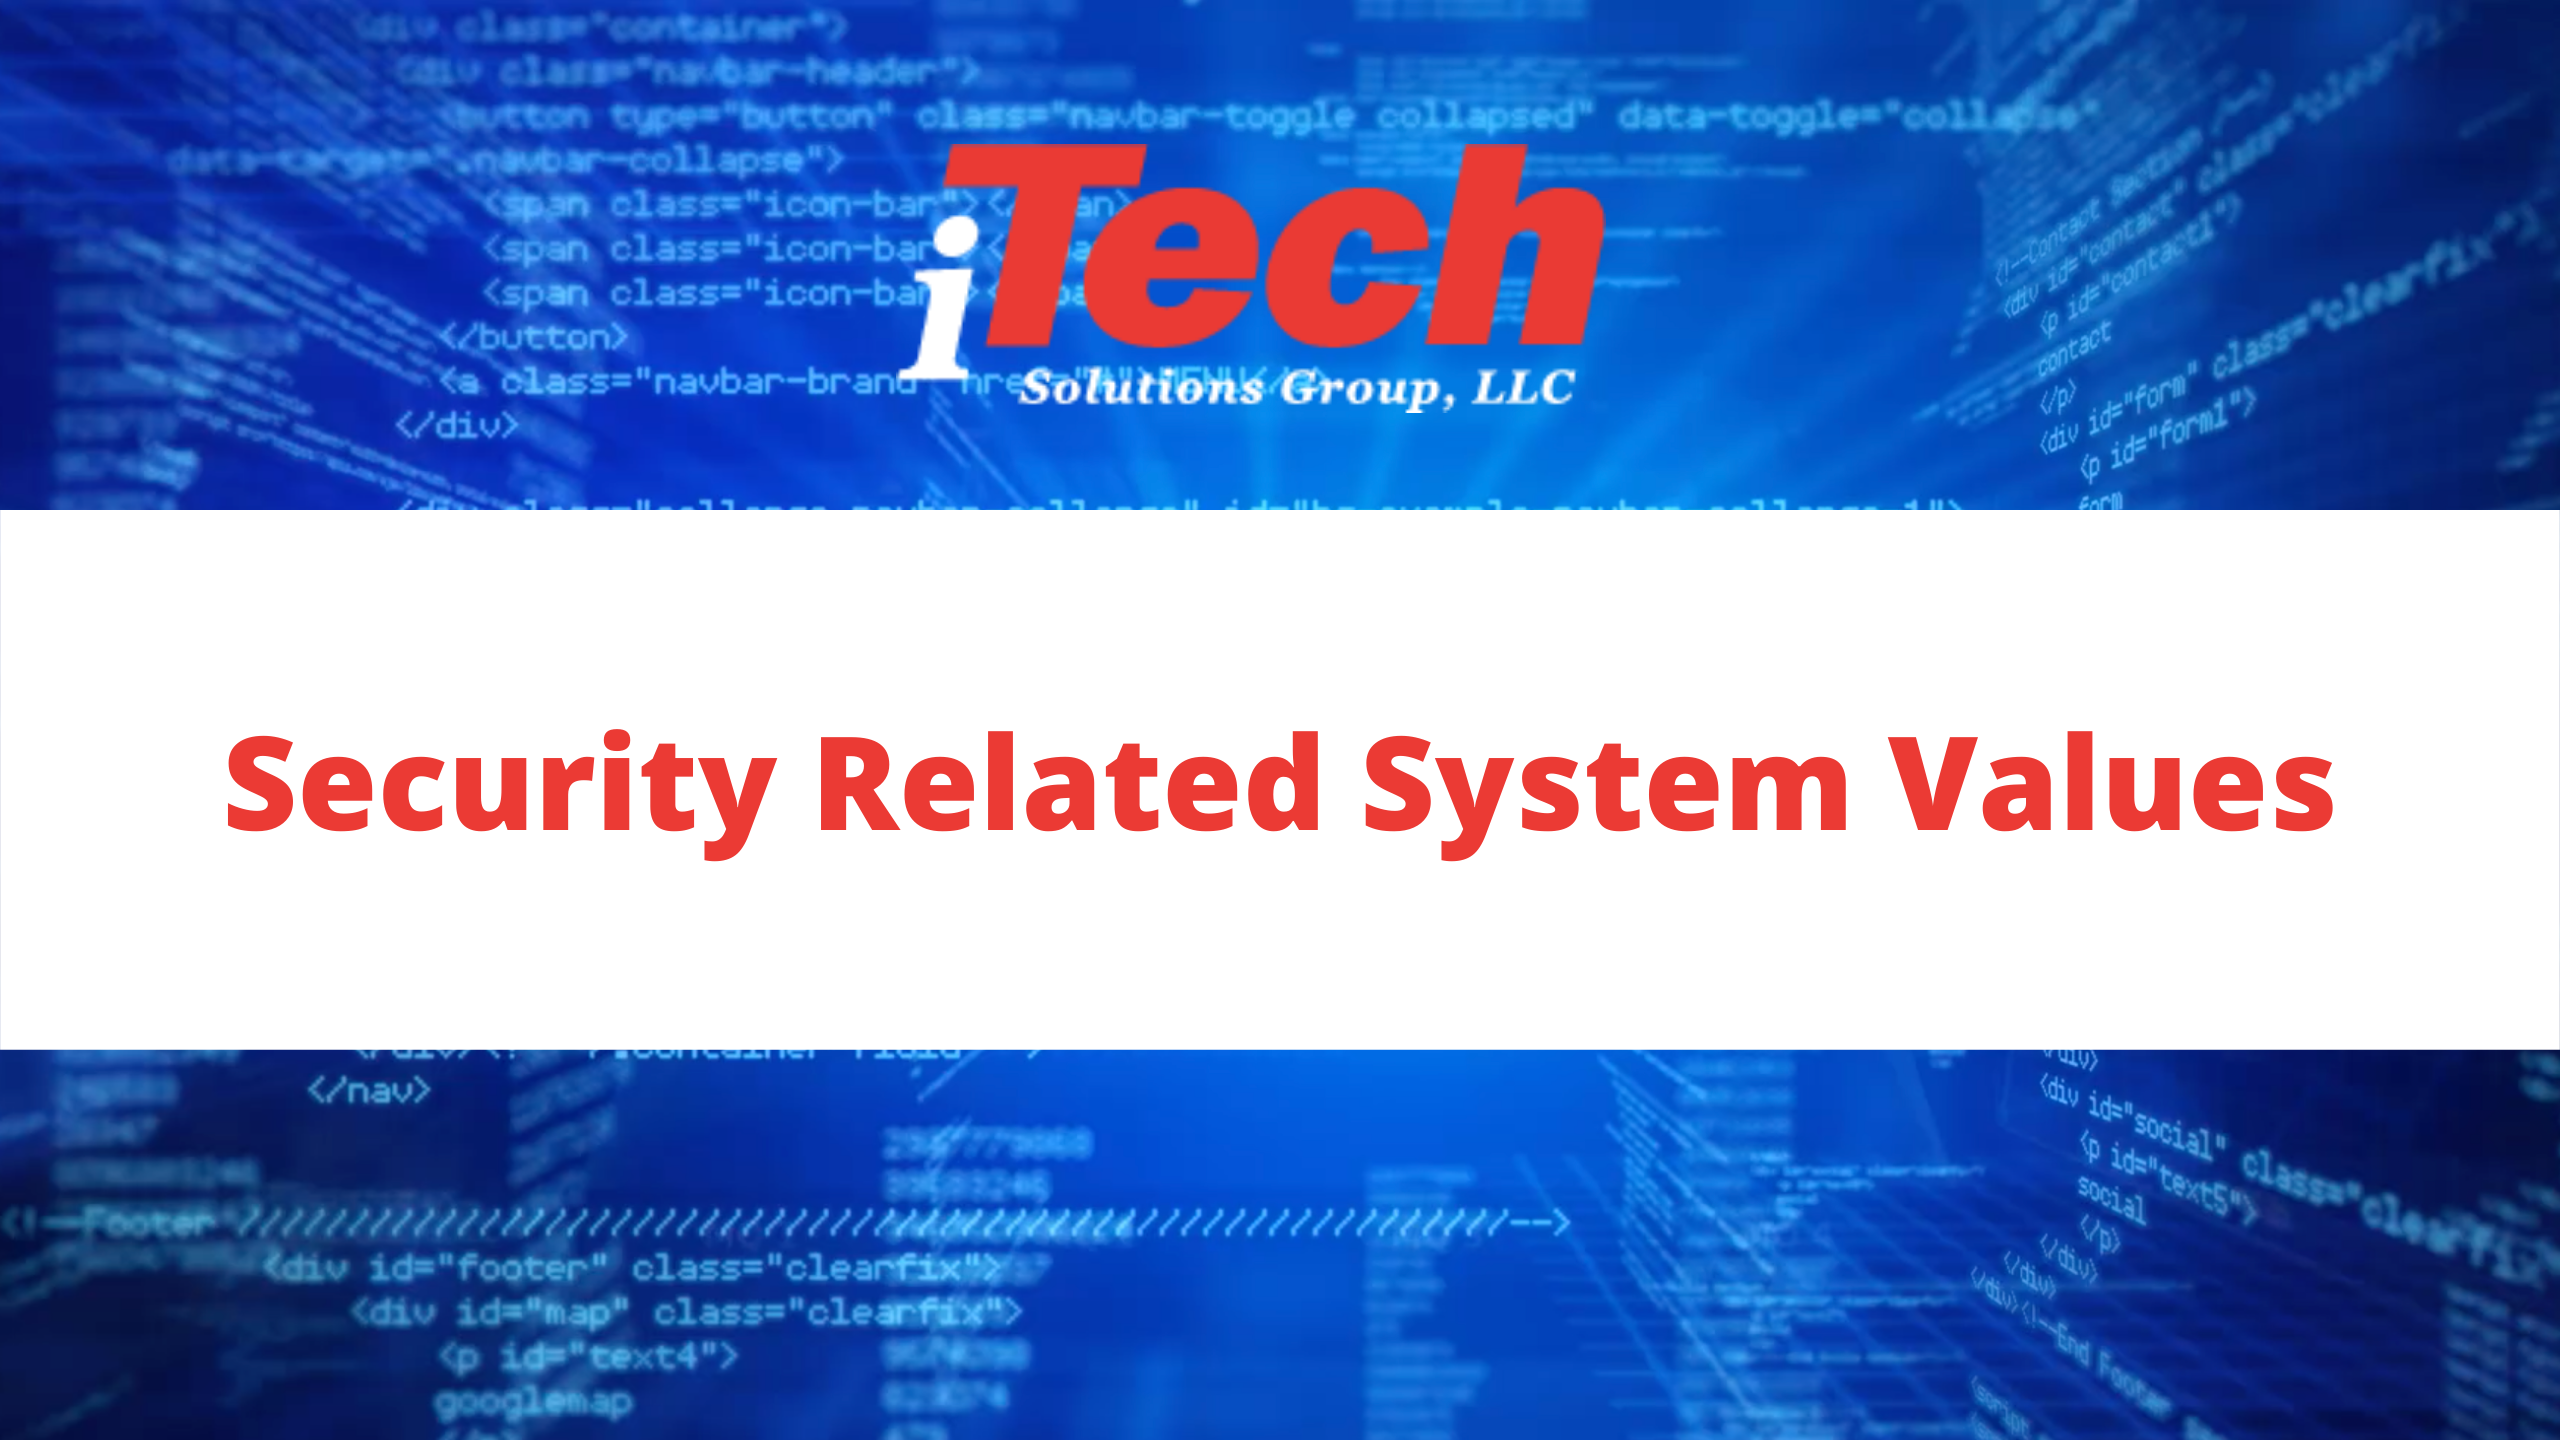 Youtube_ Security Related System Values